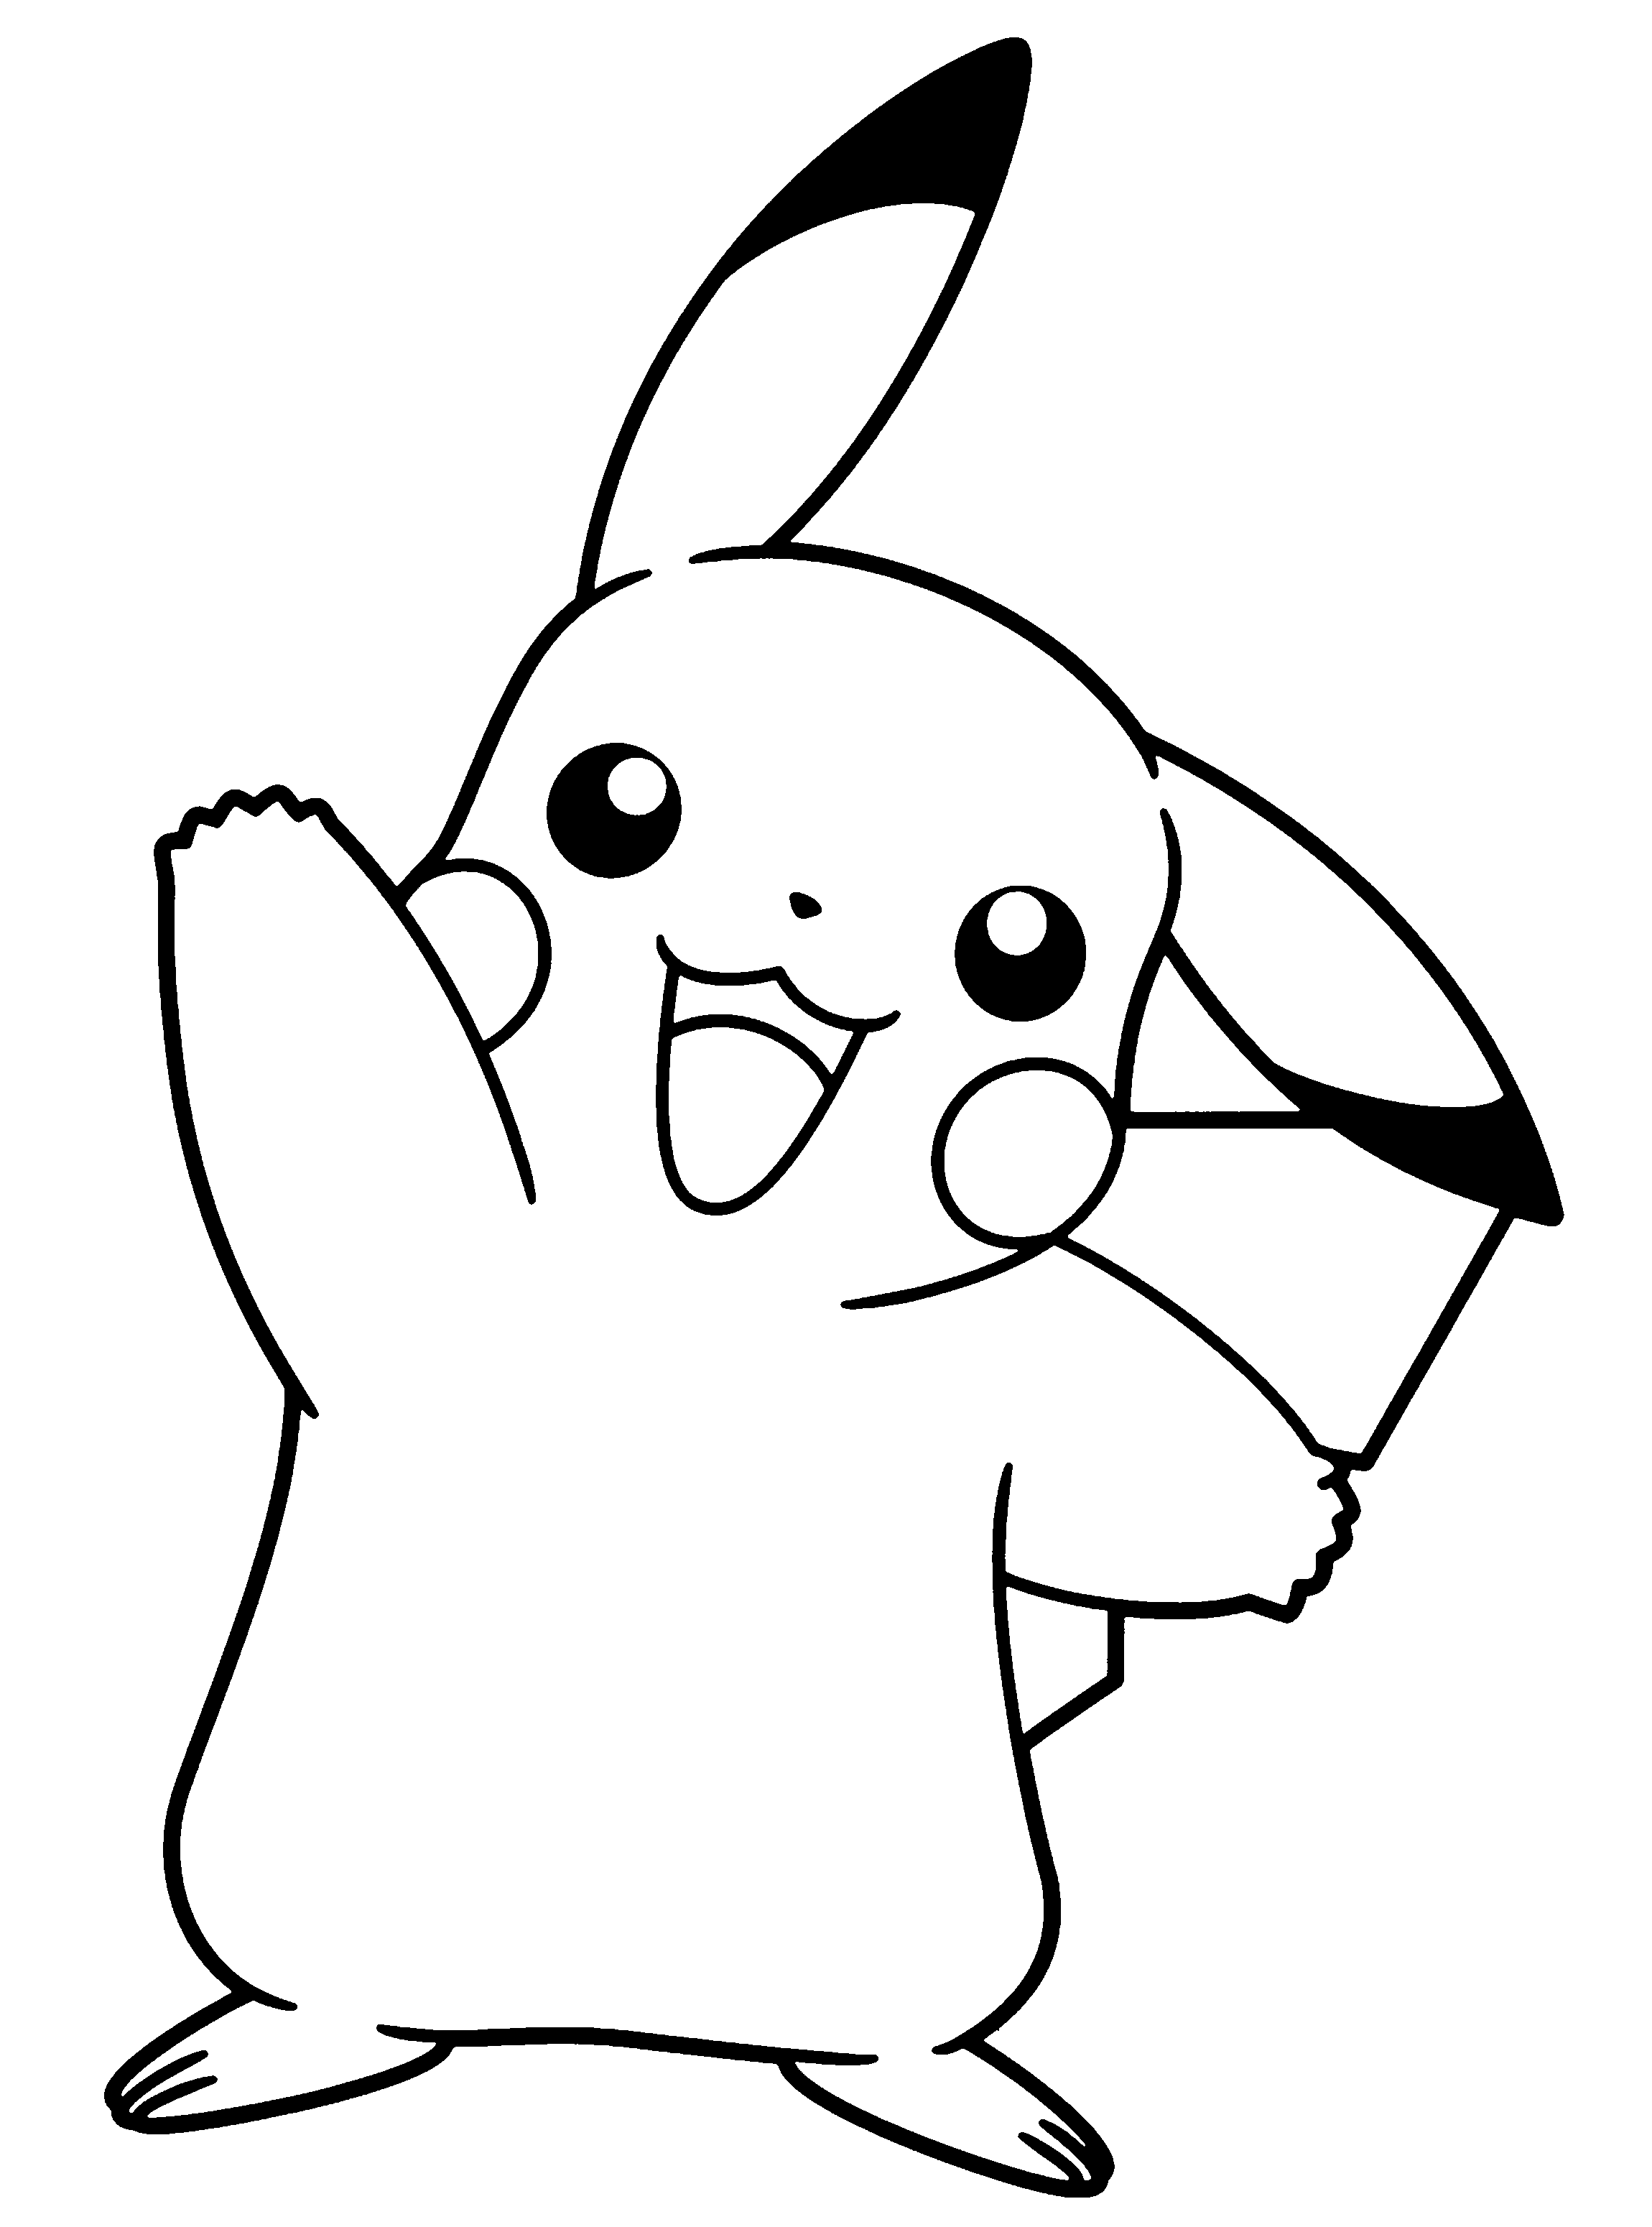 colouring pages pokemon black and white pokemon characters black and white coloring pages black pokemon white and pages colouring